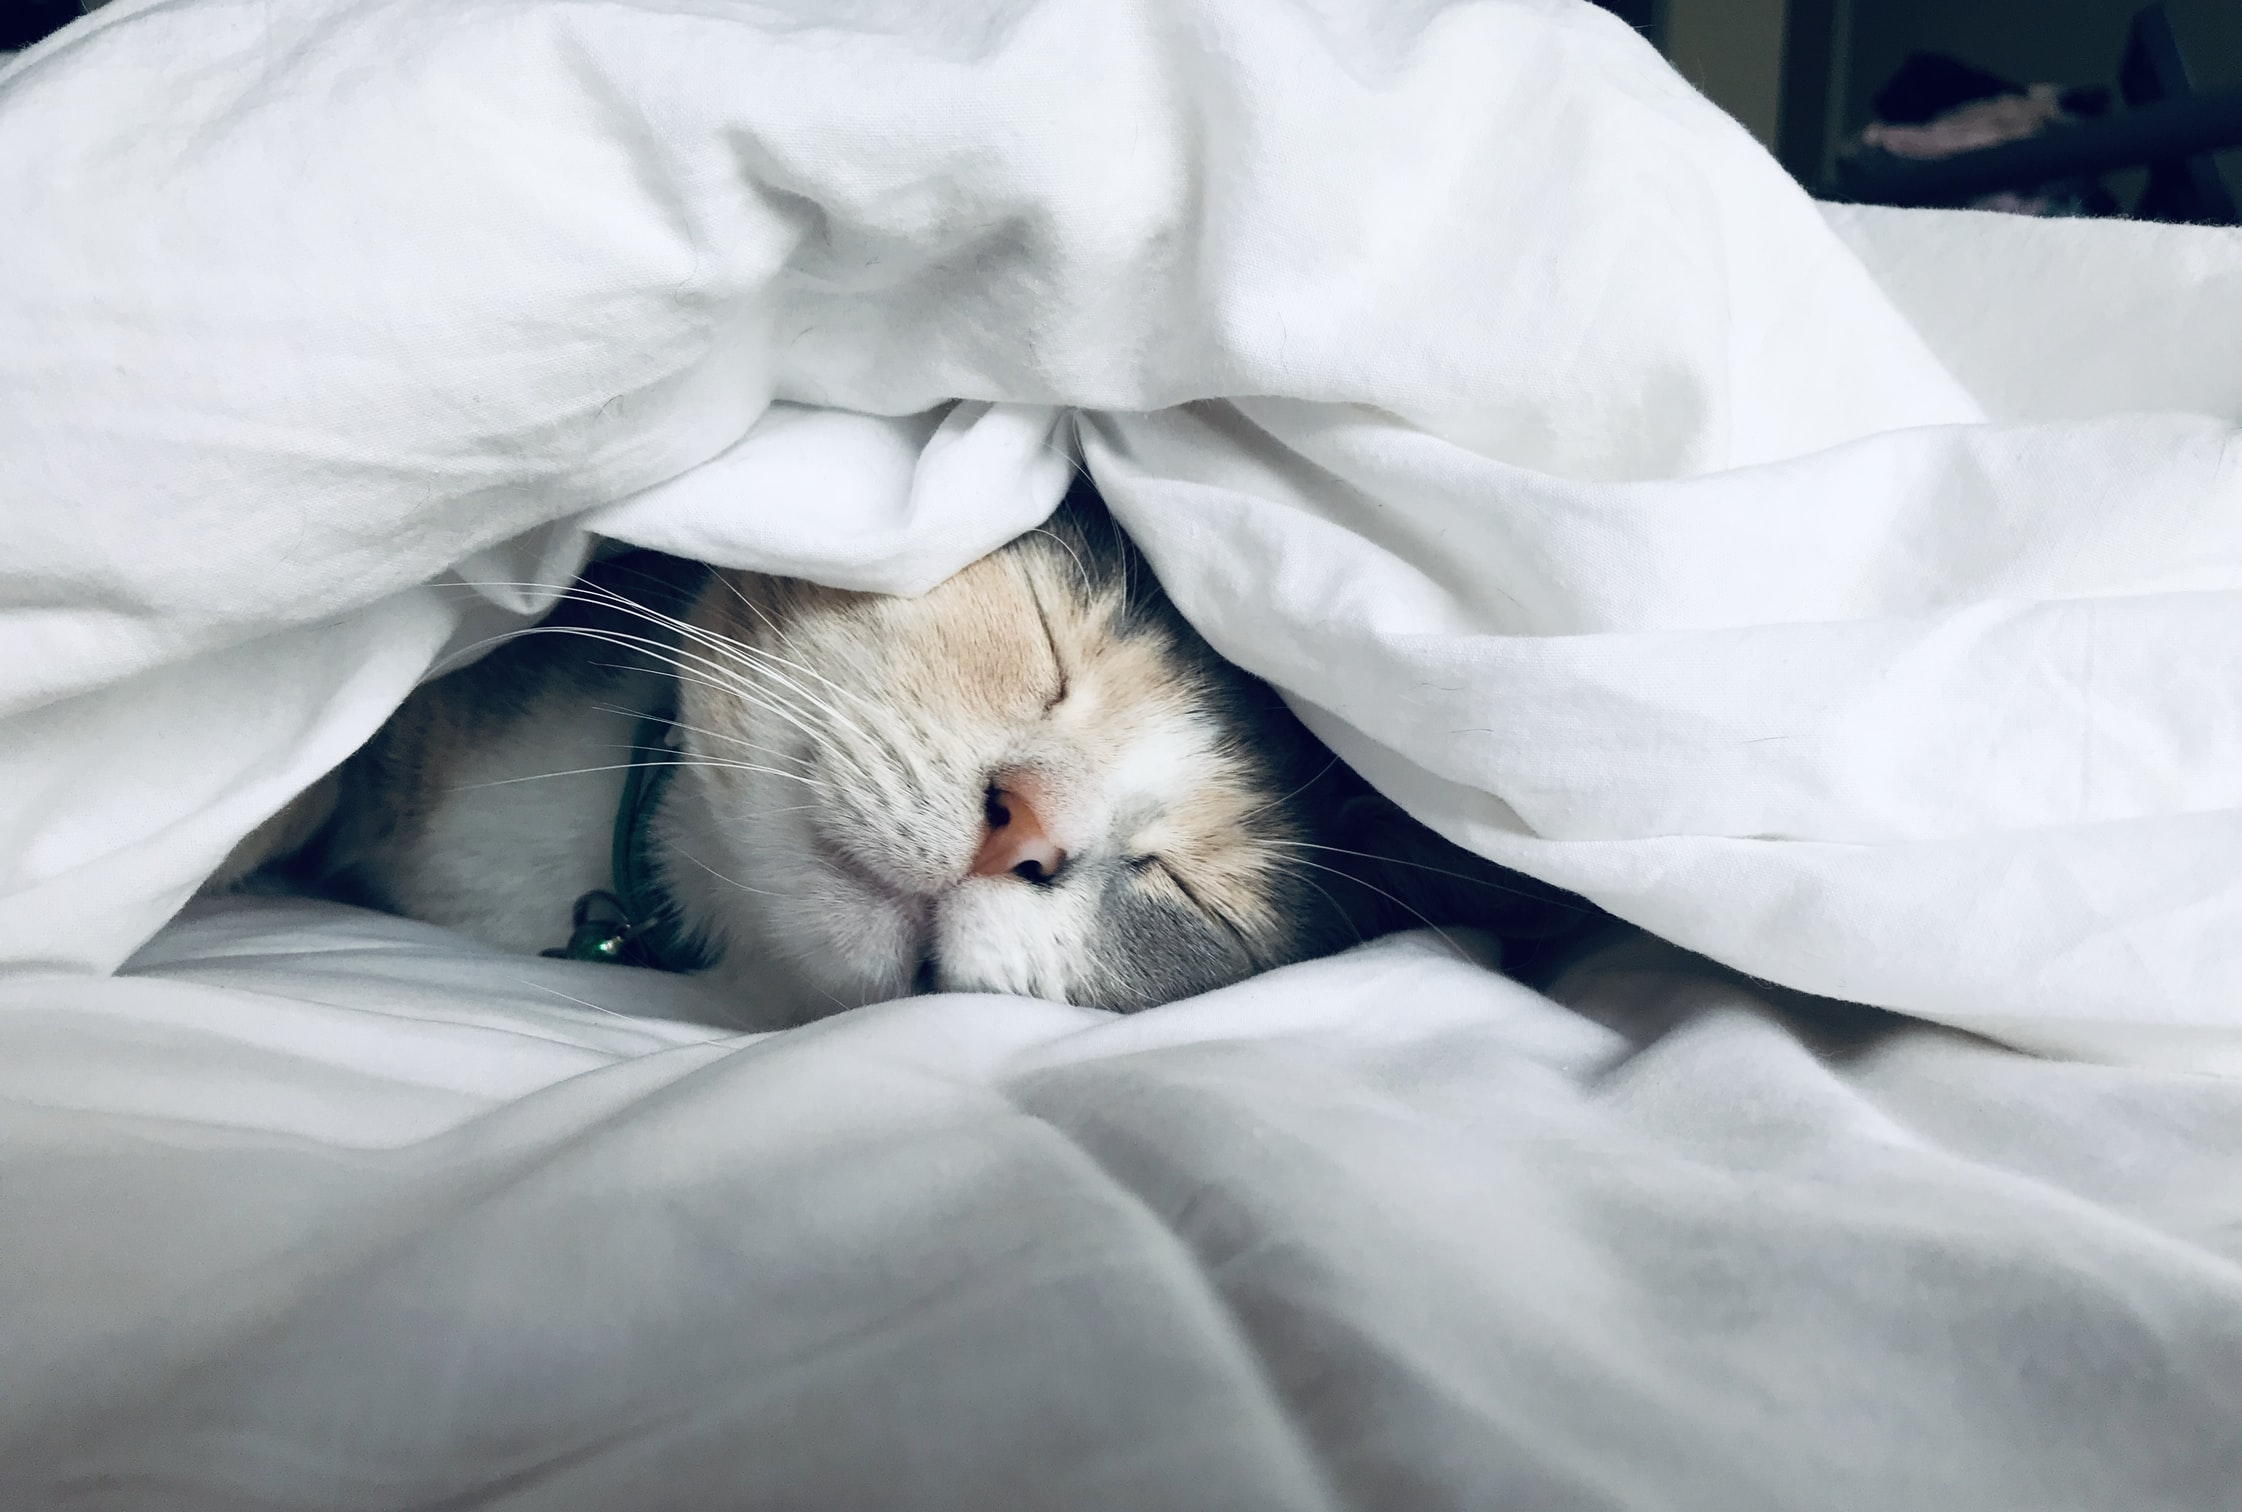 isolation self care tips cat sleeping in bed